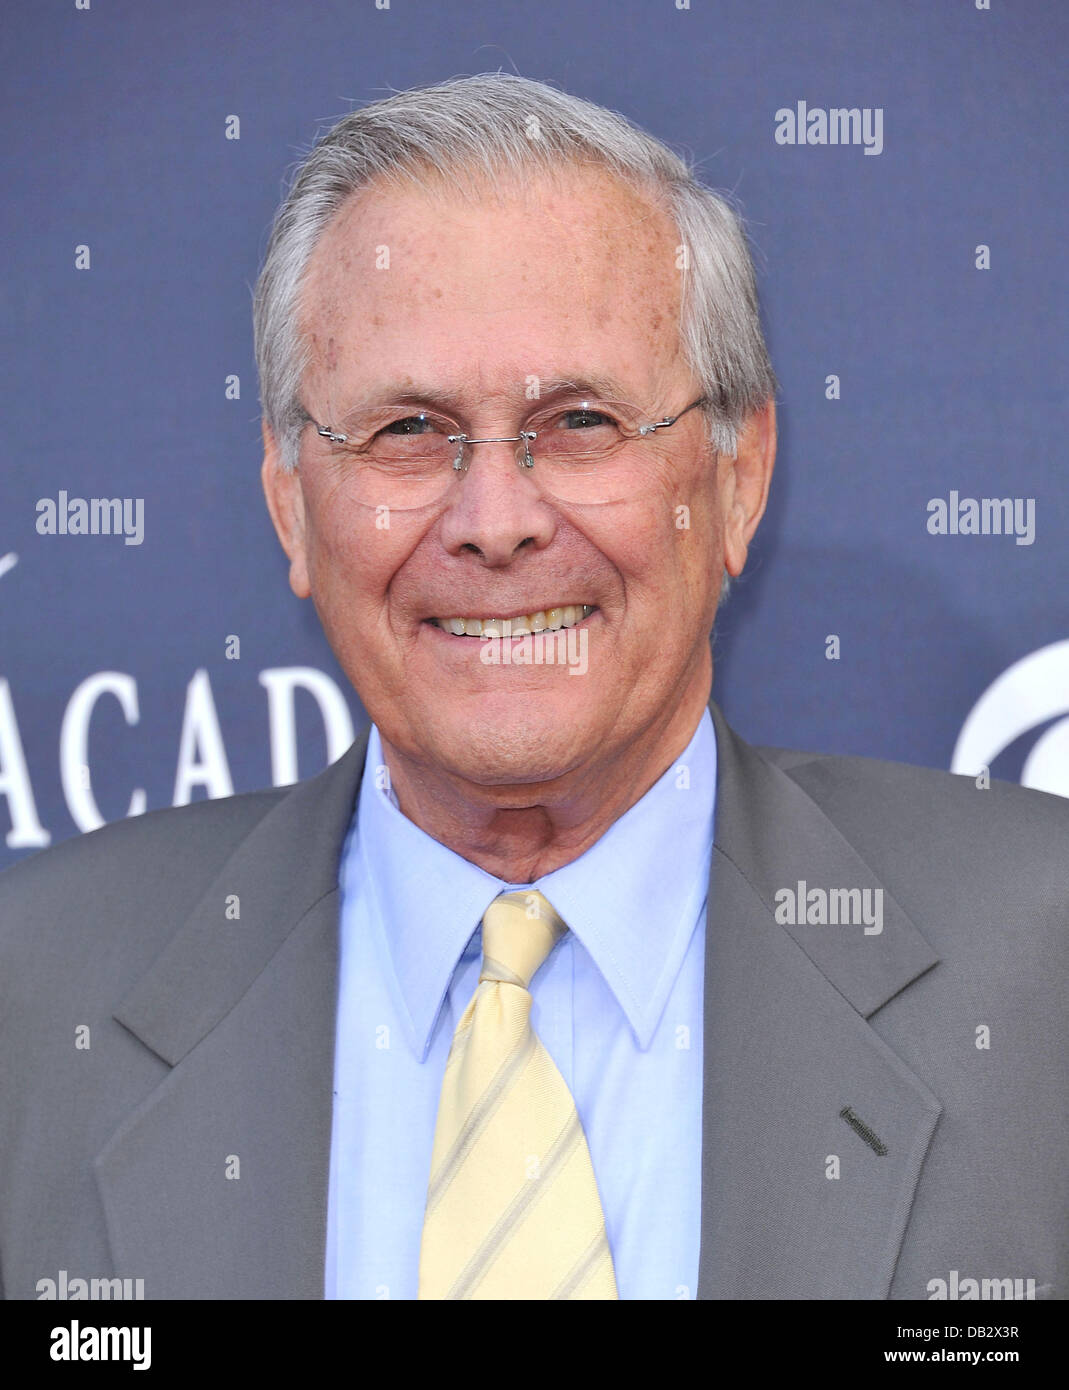 Donald Rumsfeld The Academy of Country Music Awards 2011 at MGM Grand Garden Arena - Arrivals Las Vegas, Nevada - Stock Image